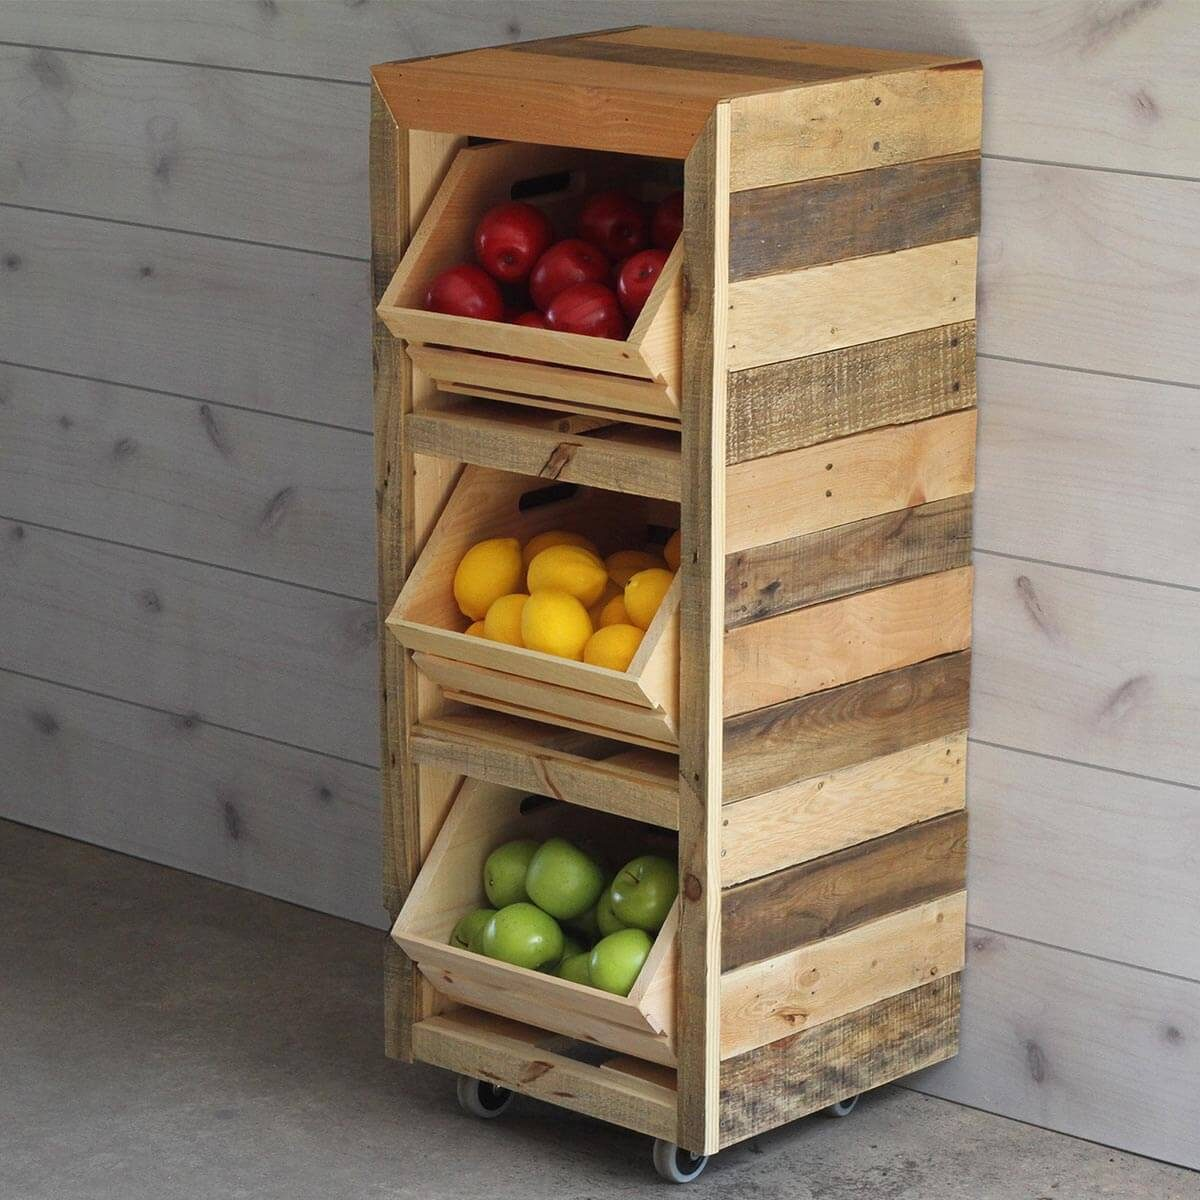 Build a Produce Storage Unit with Crates  The Family Handyman